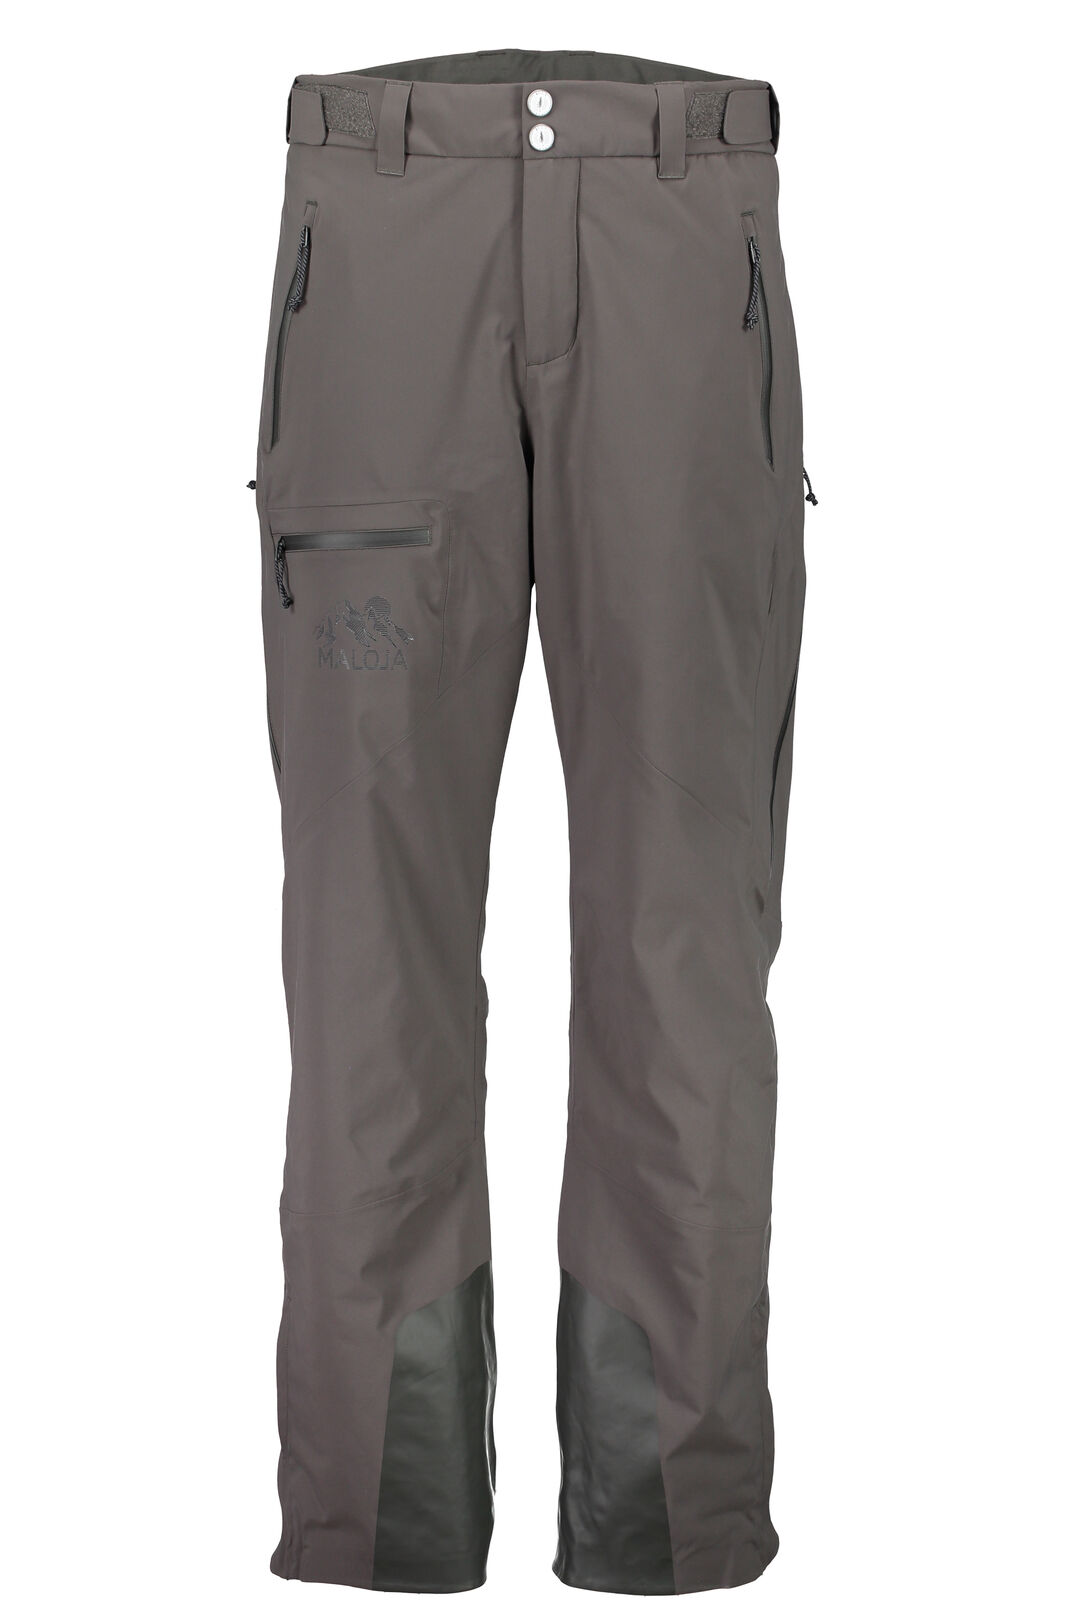 Maloja Outdoor Trousers SKI PANTS functional pants grey granm. Padded Stretch